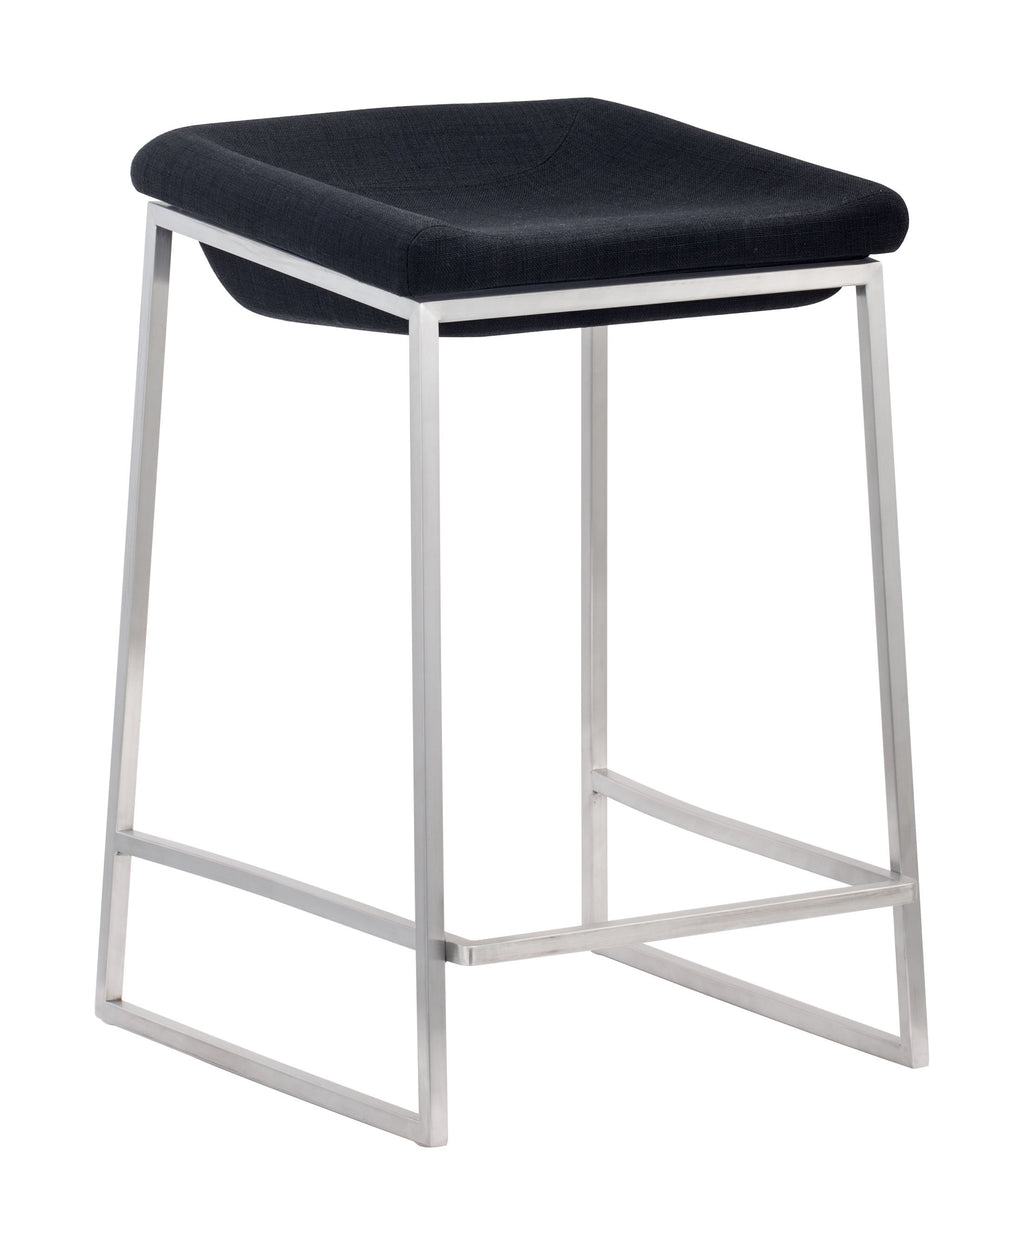 Lids Counter Stool (Dark Gray)